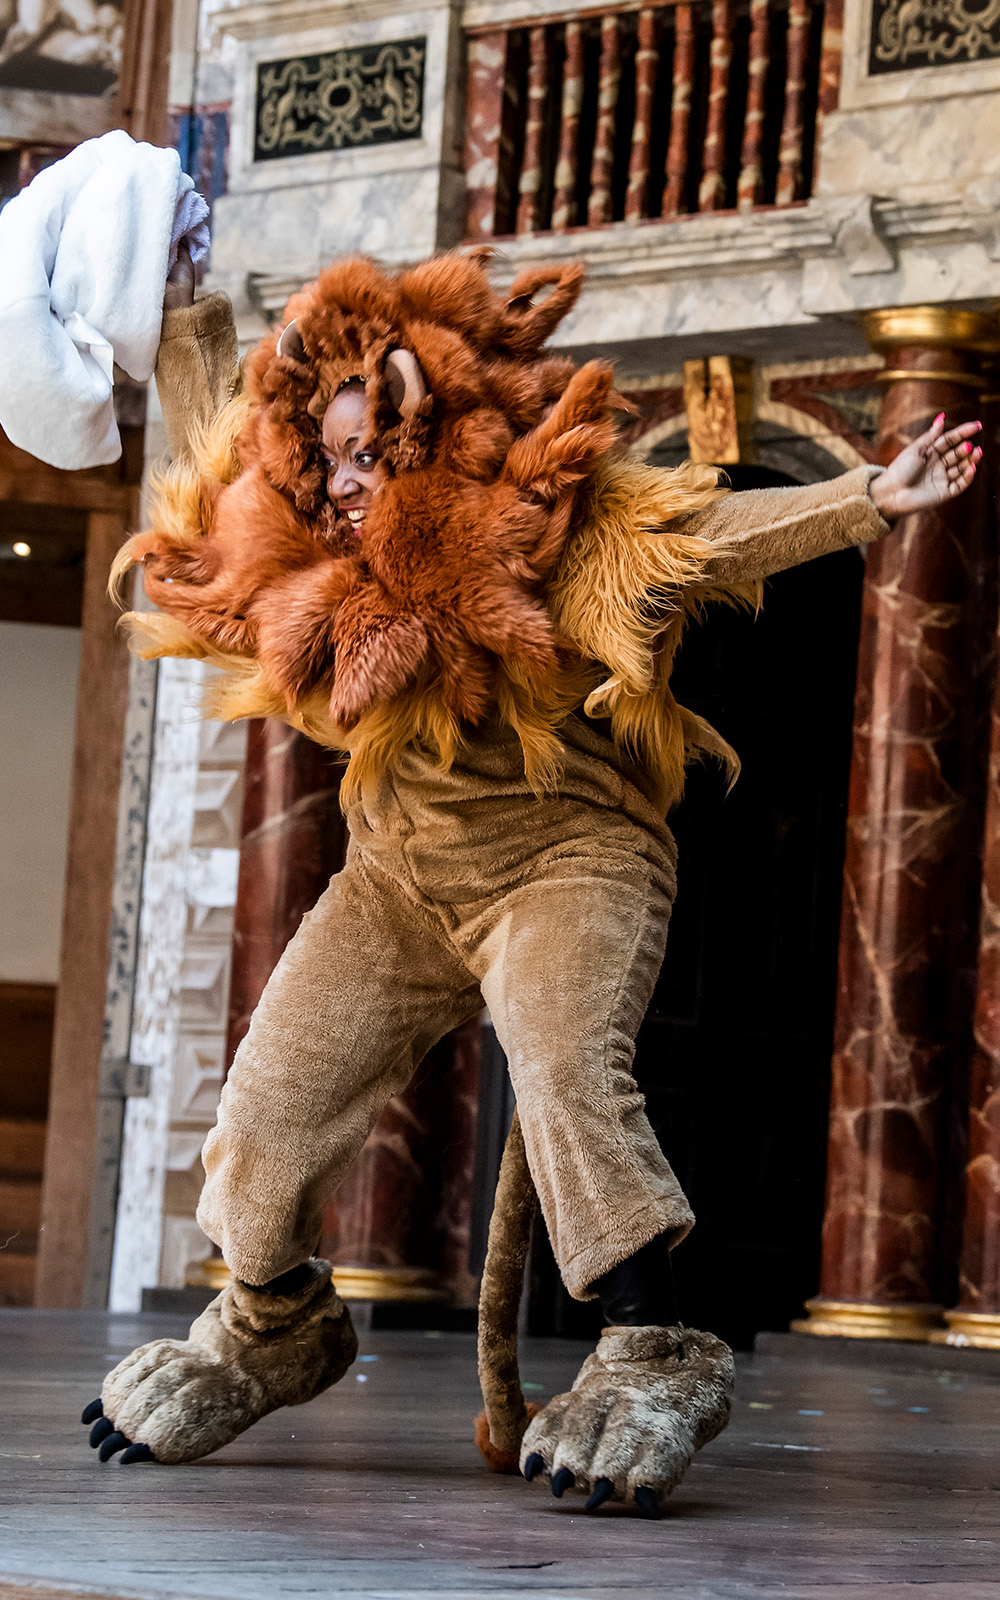 A person mid-air in a lion costume